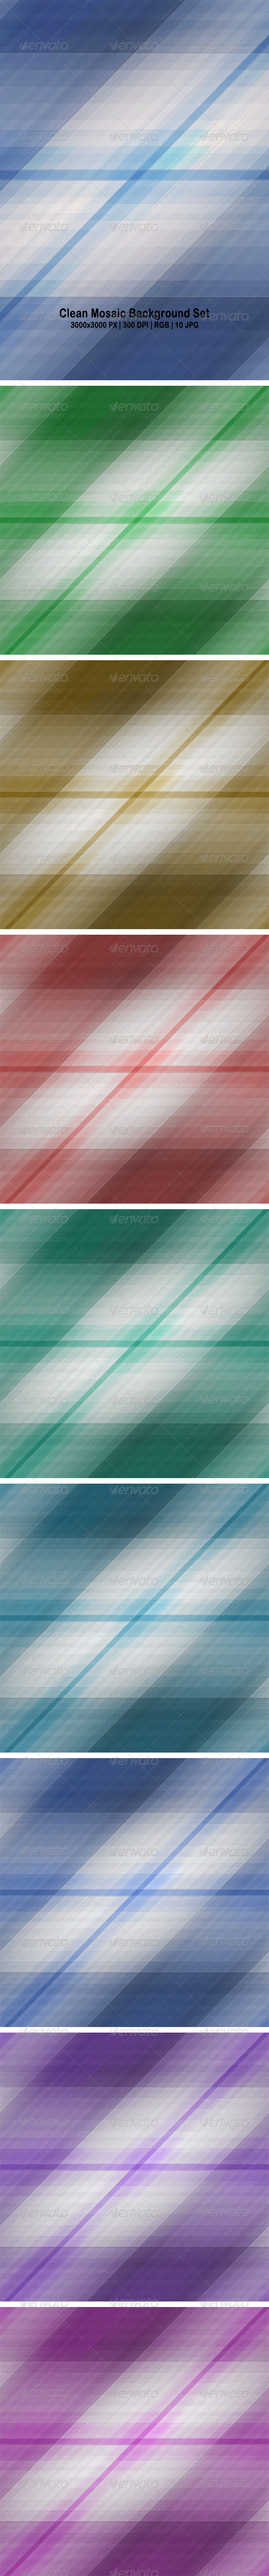 Clean Mosaic Background Set - Backgrounds Graphics